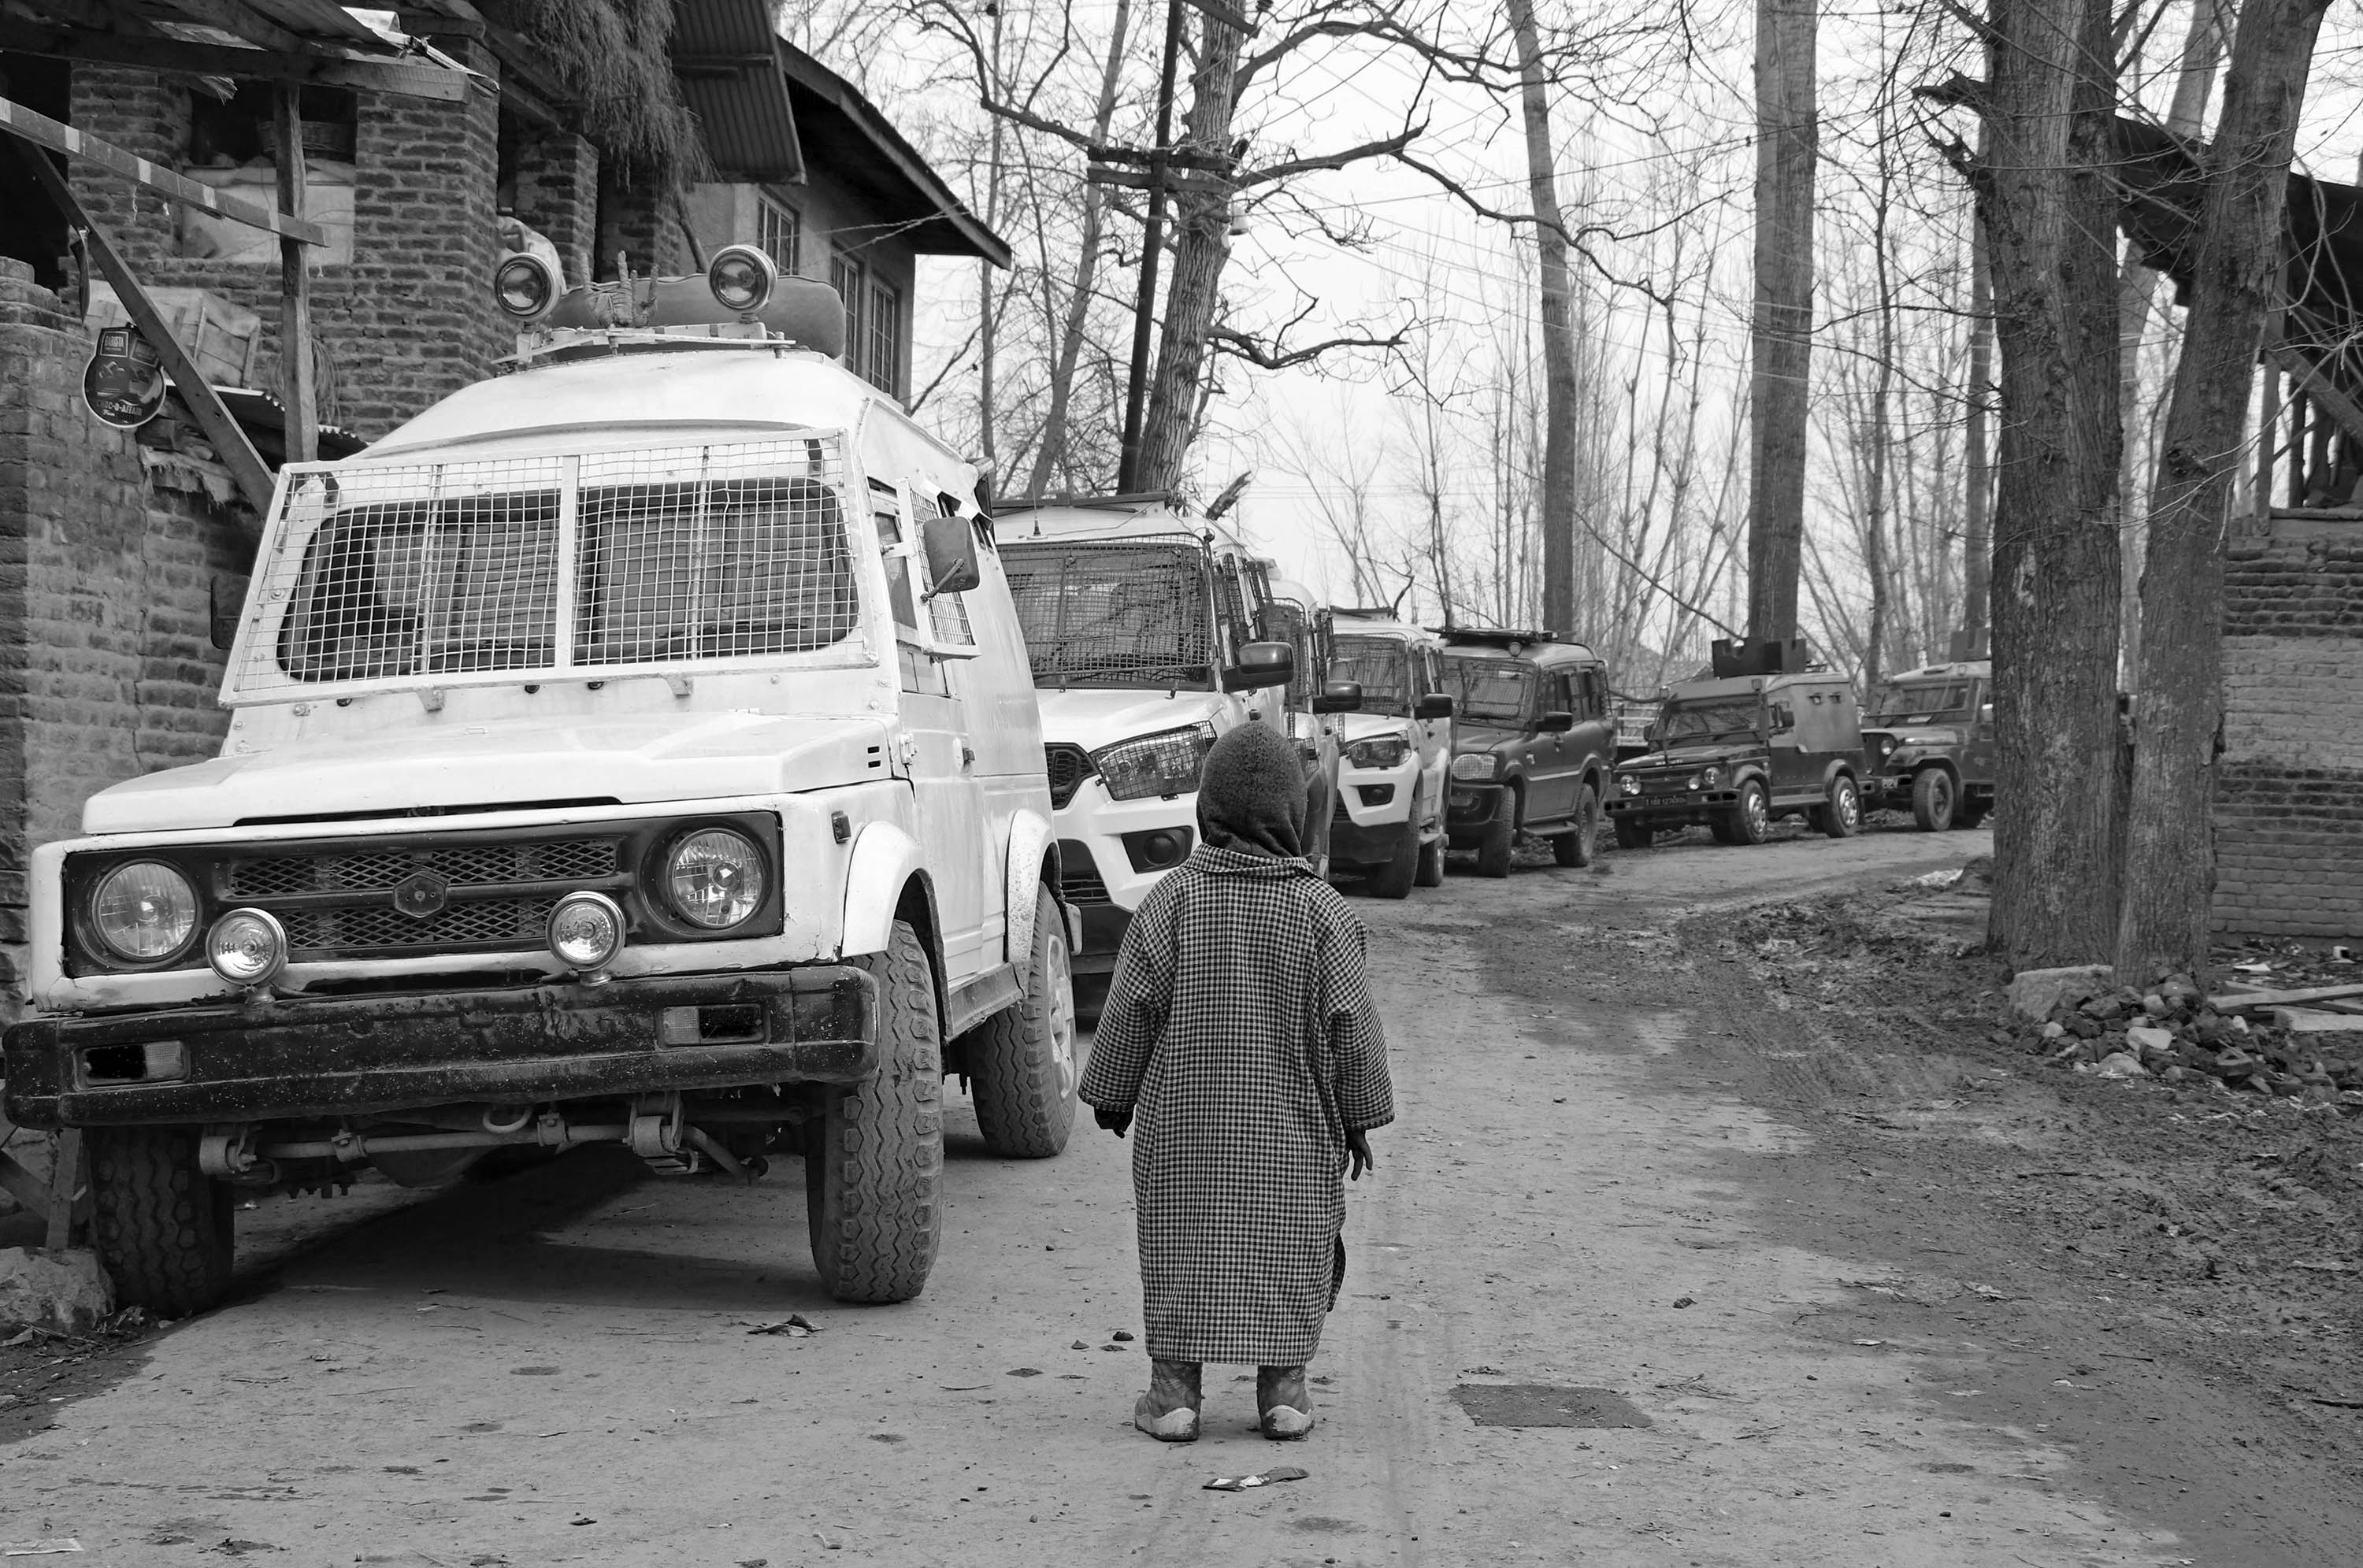 (A boy looks at armed forces' vehicles during a counter-insurgency operation in Tral area of Pulwama in South Kashmir on June 25, 2020). Picture: Kamran Yousuf/NewsClick